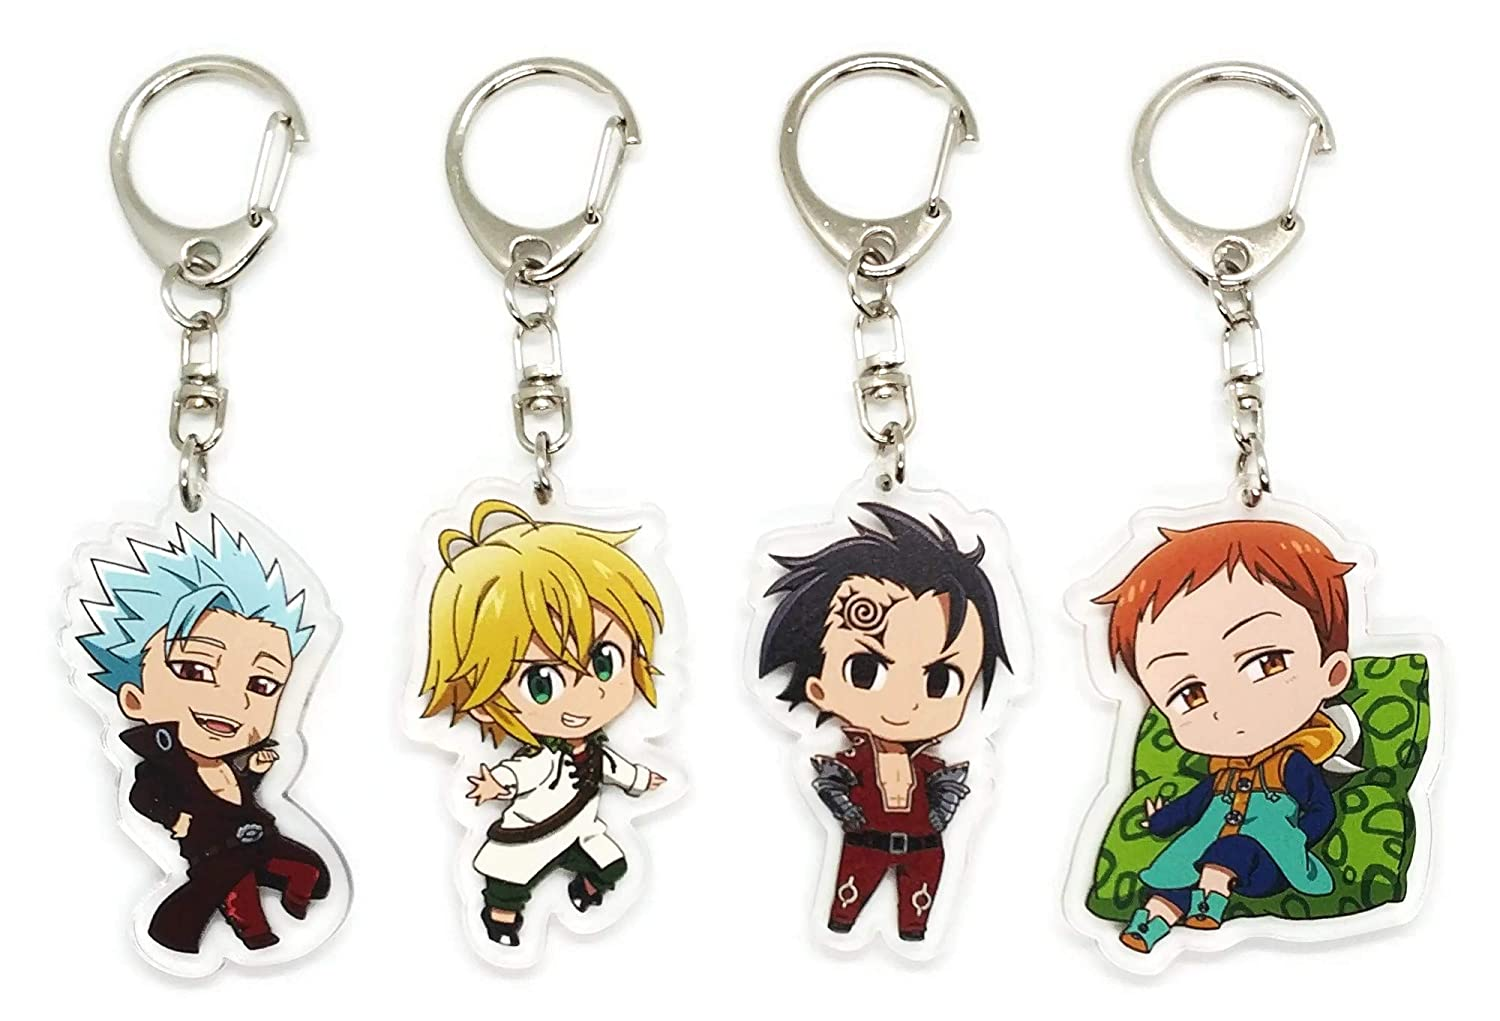 EBTY-Dreams Inc. - Set of 4 The Seven Deadly Sins (Nanatsu no Taizai) Anime Acrylic Keychain Ban, Meliodas, King, Zeldris